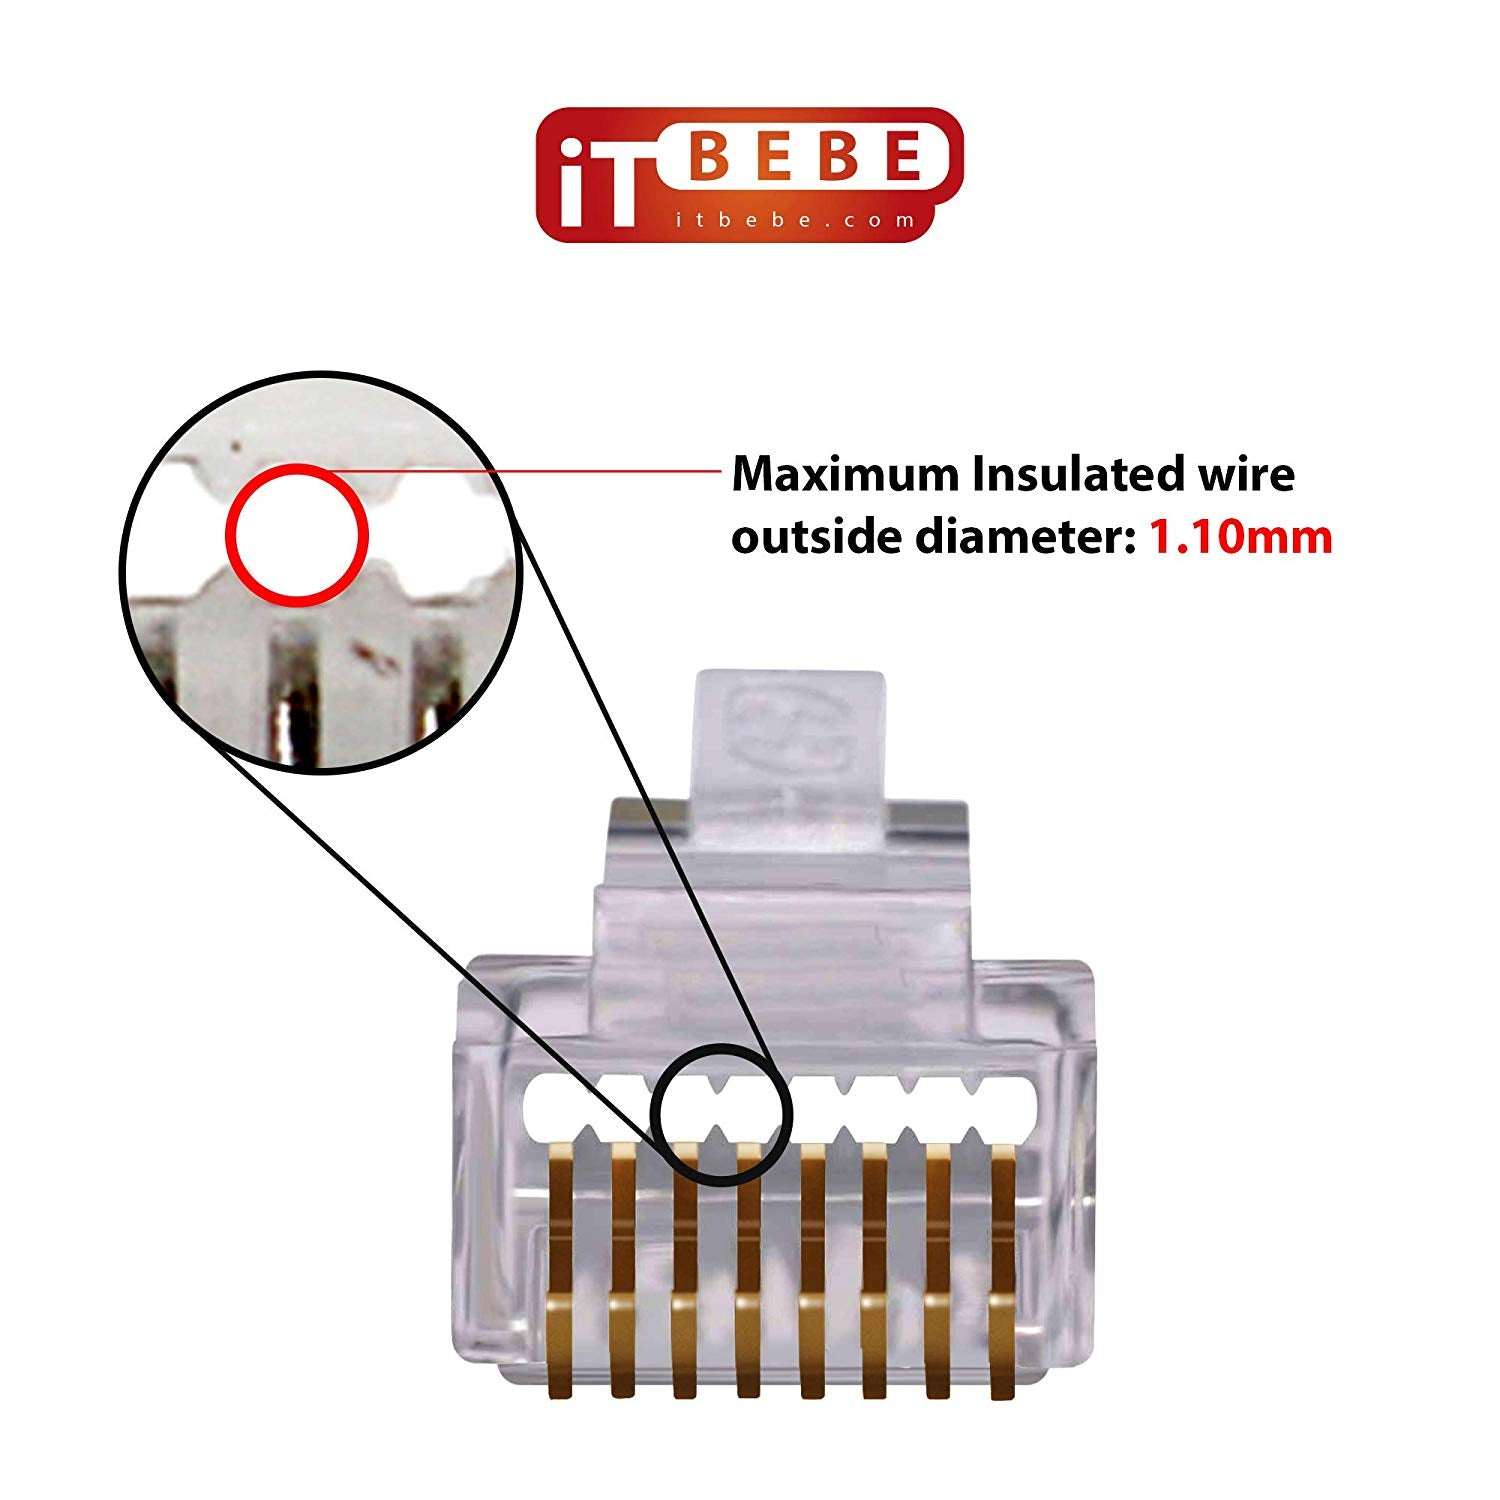 rj45 inline coupler wiring diagram buy gold plated pass through rj45 cat6 connectors online itbebe  pass through rj45 cat6 connectors